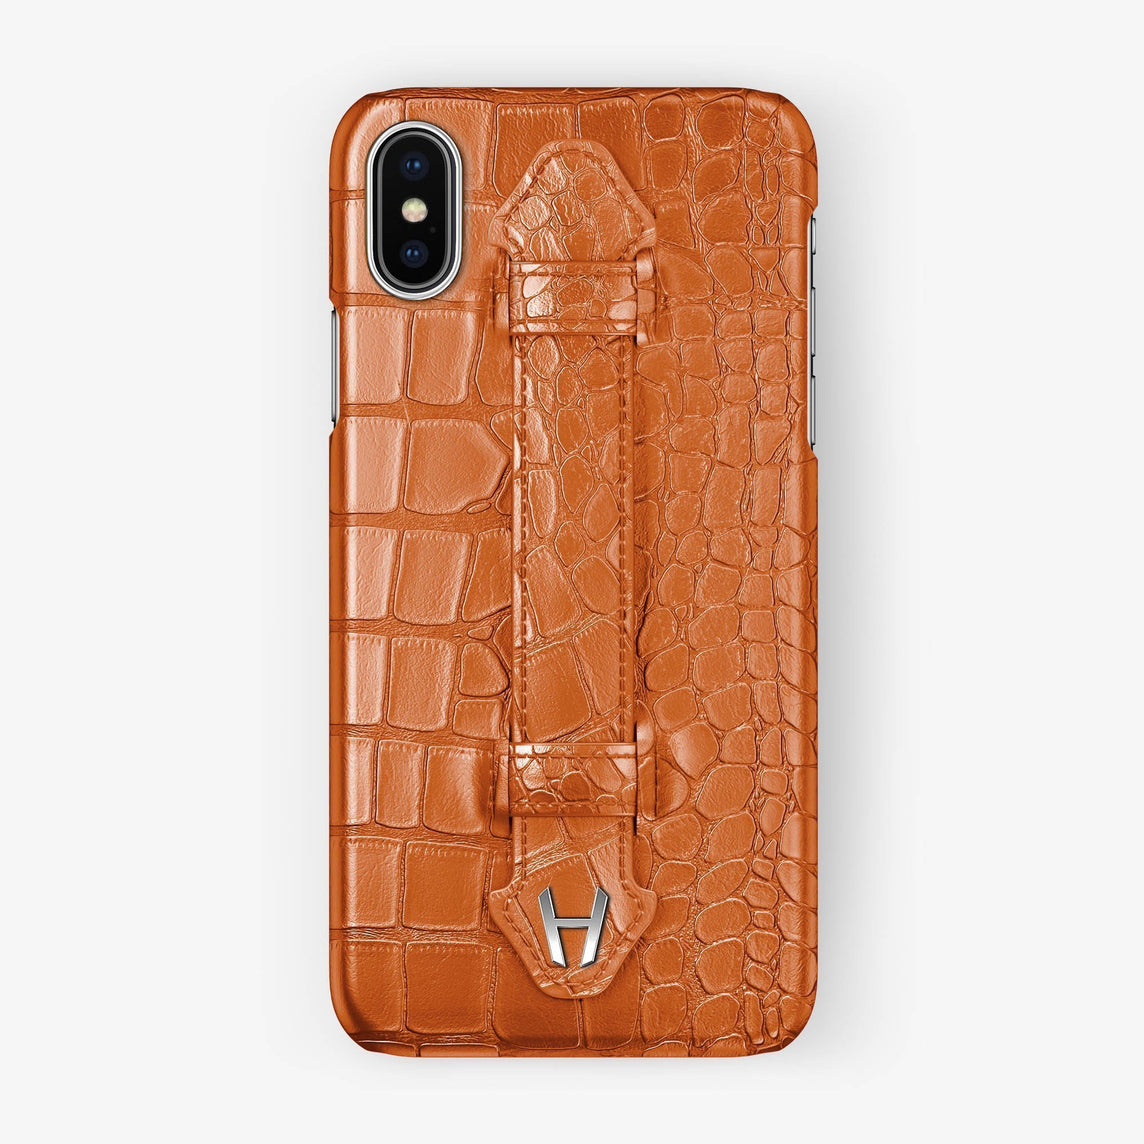 Orange Alligator iPhone Finger Case for iPhone XS Max finishing stainless steel - Hadoro Luxury Cases